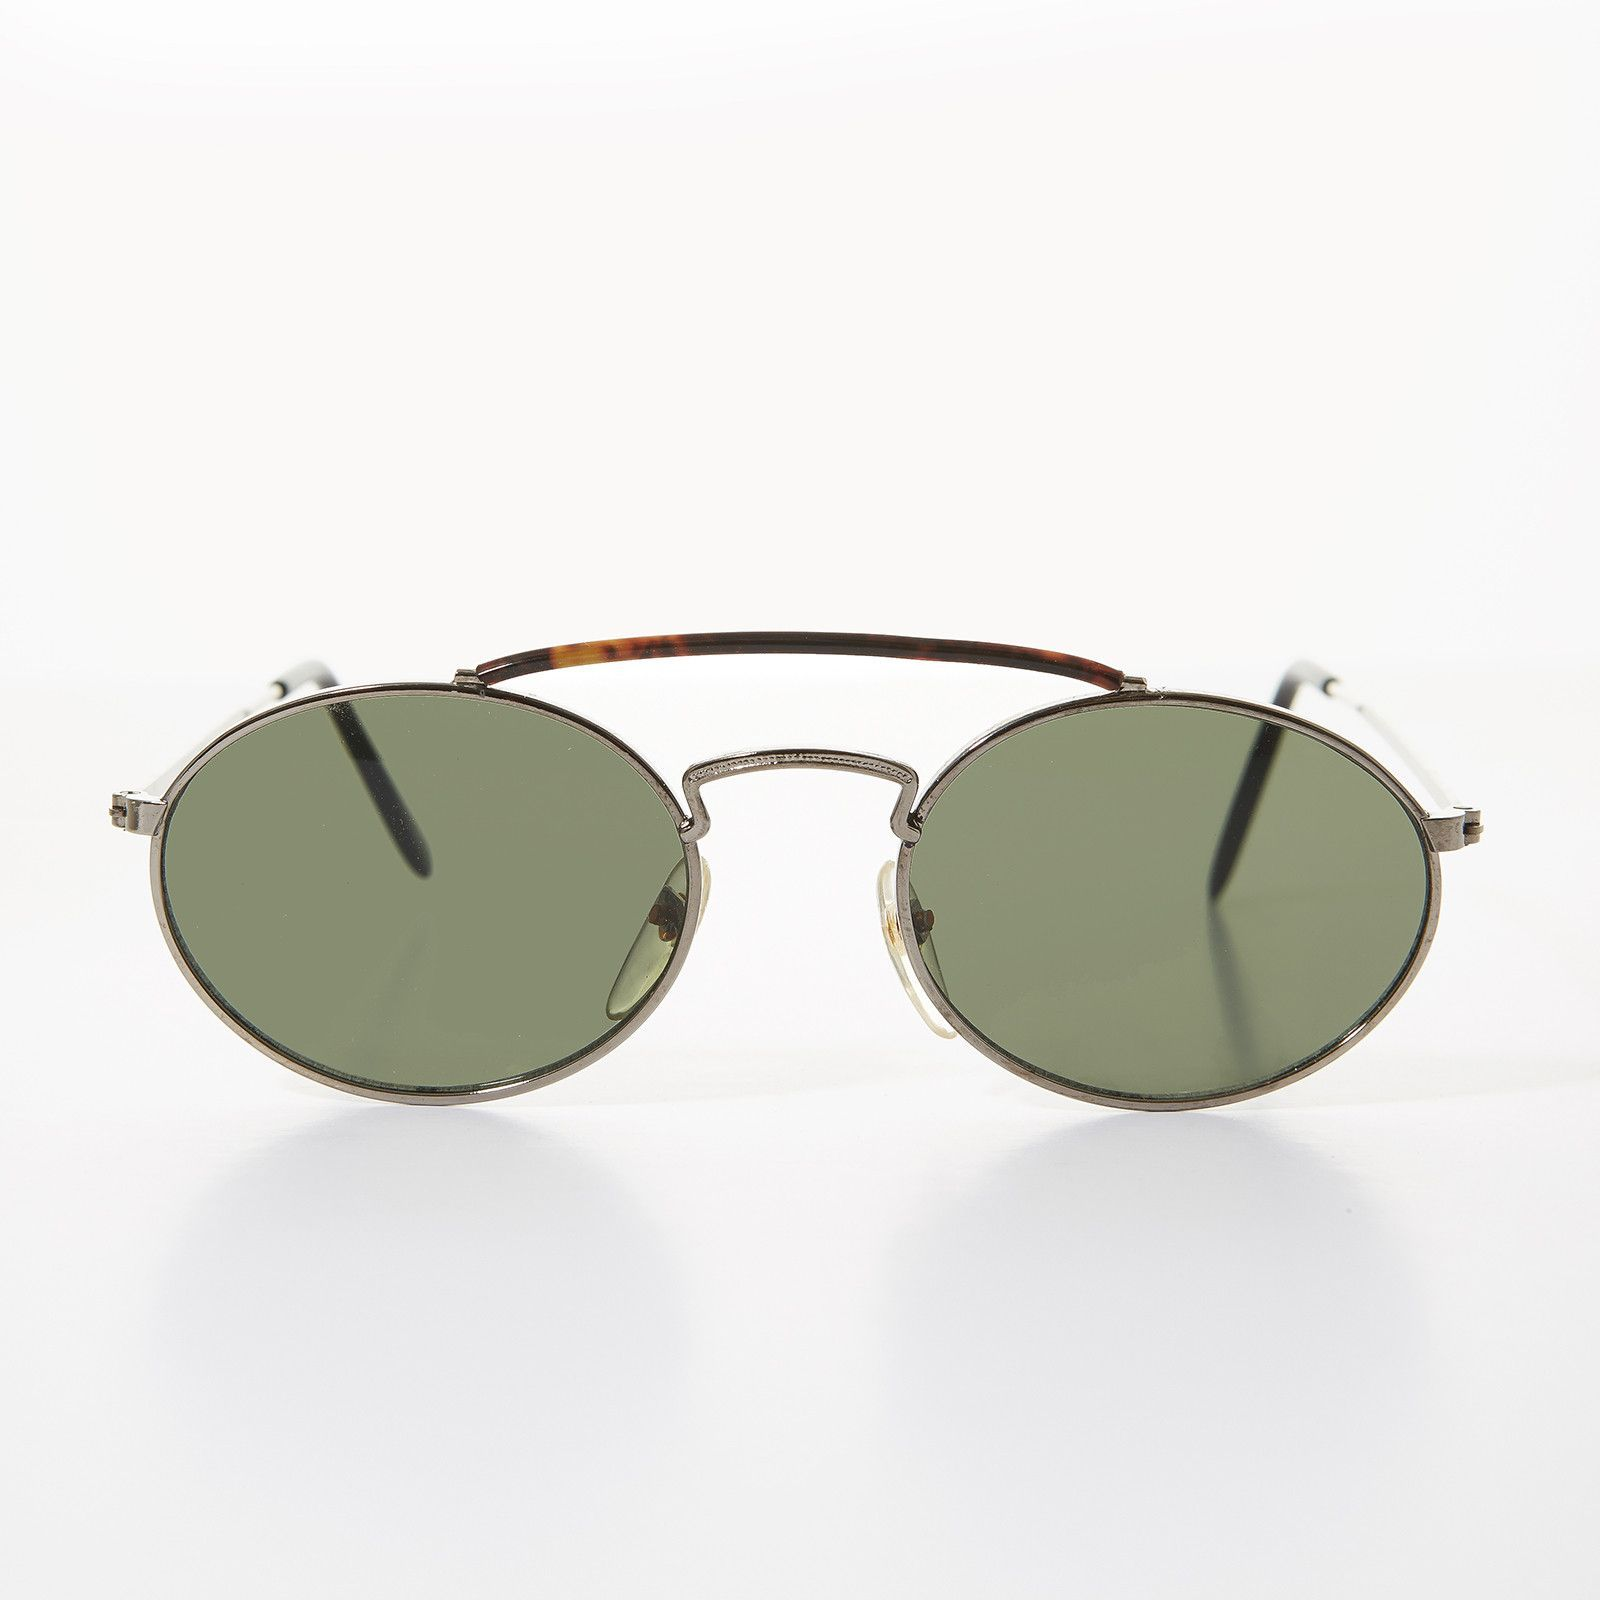 6045580510402 Porsche Design 5623 46 small   aviator sunglasses by AudaxEyewear ...